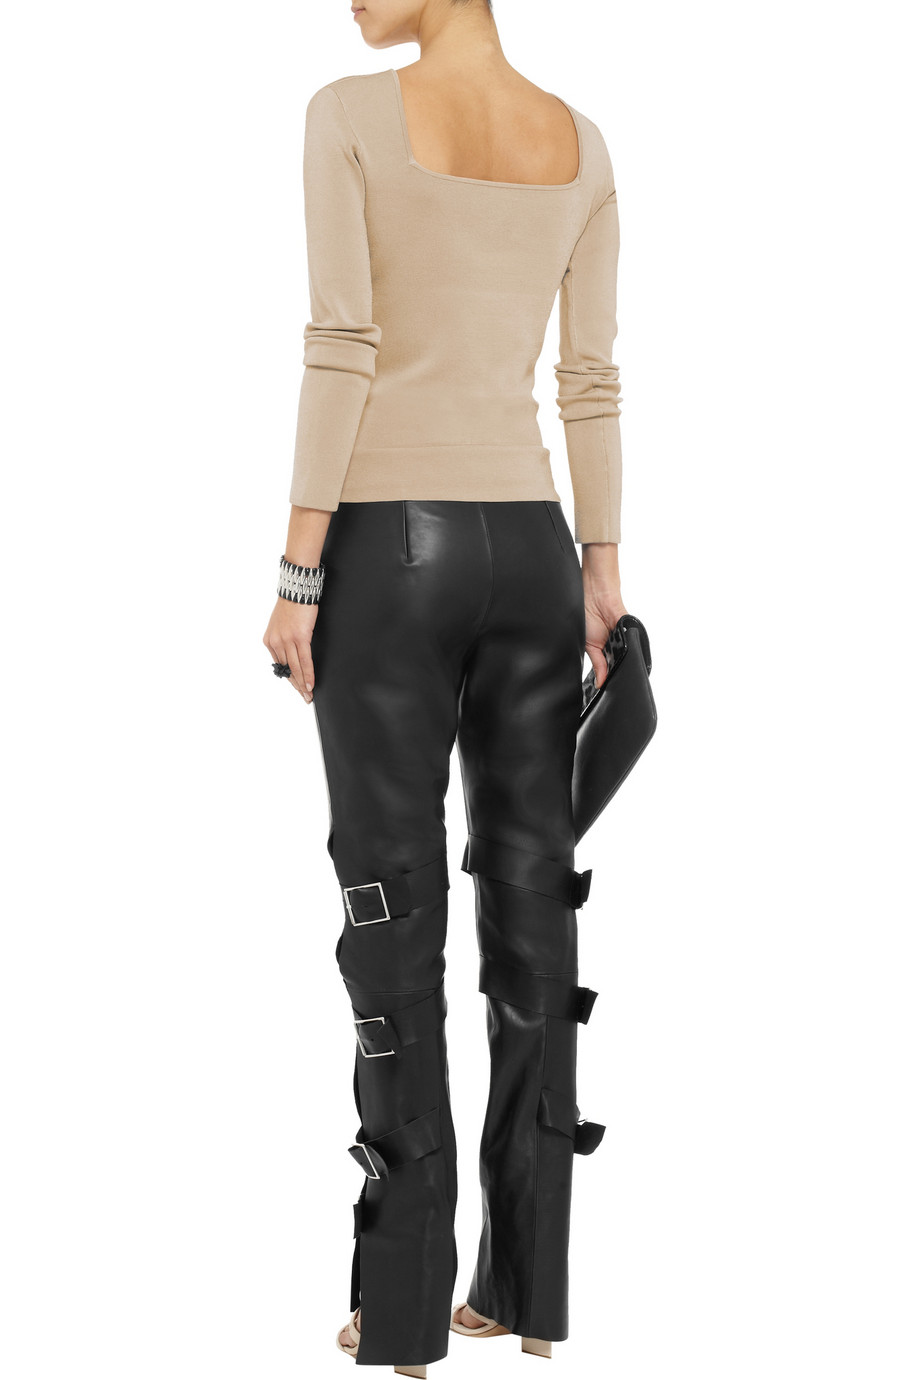 Acne Studios Verena leather bootcut pants – 65% at THE OUTNET.COM